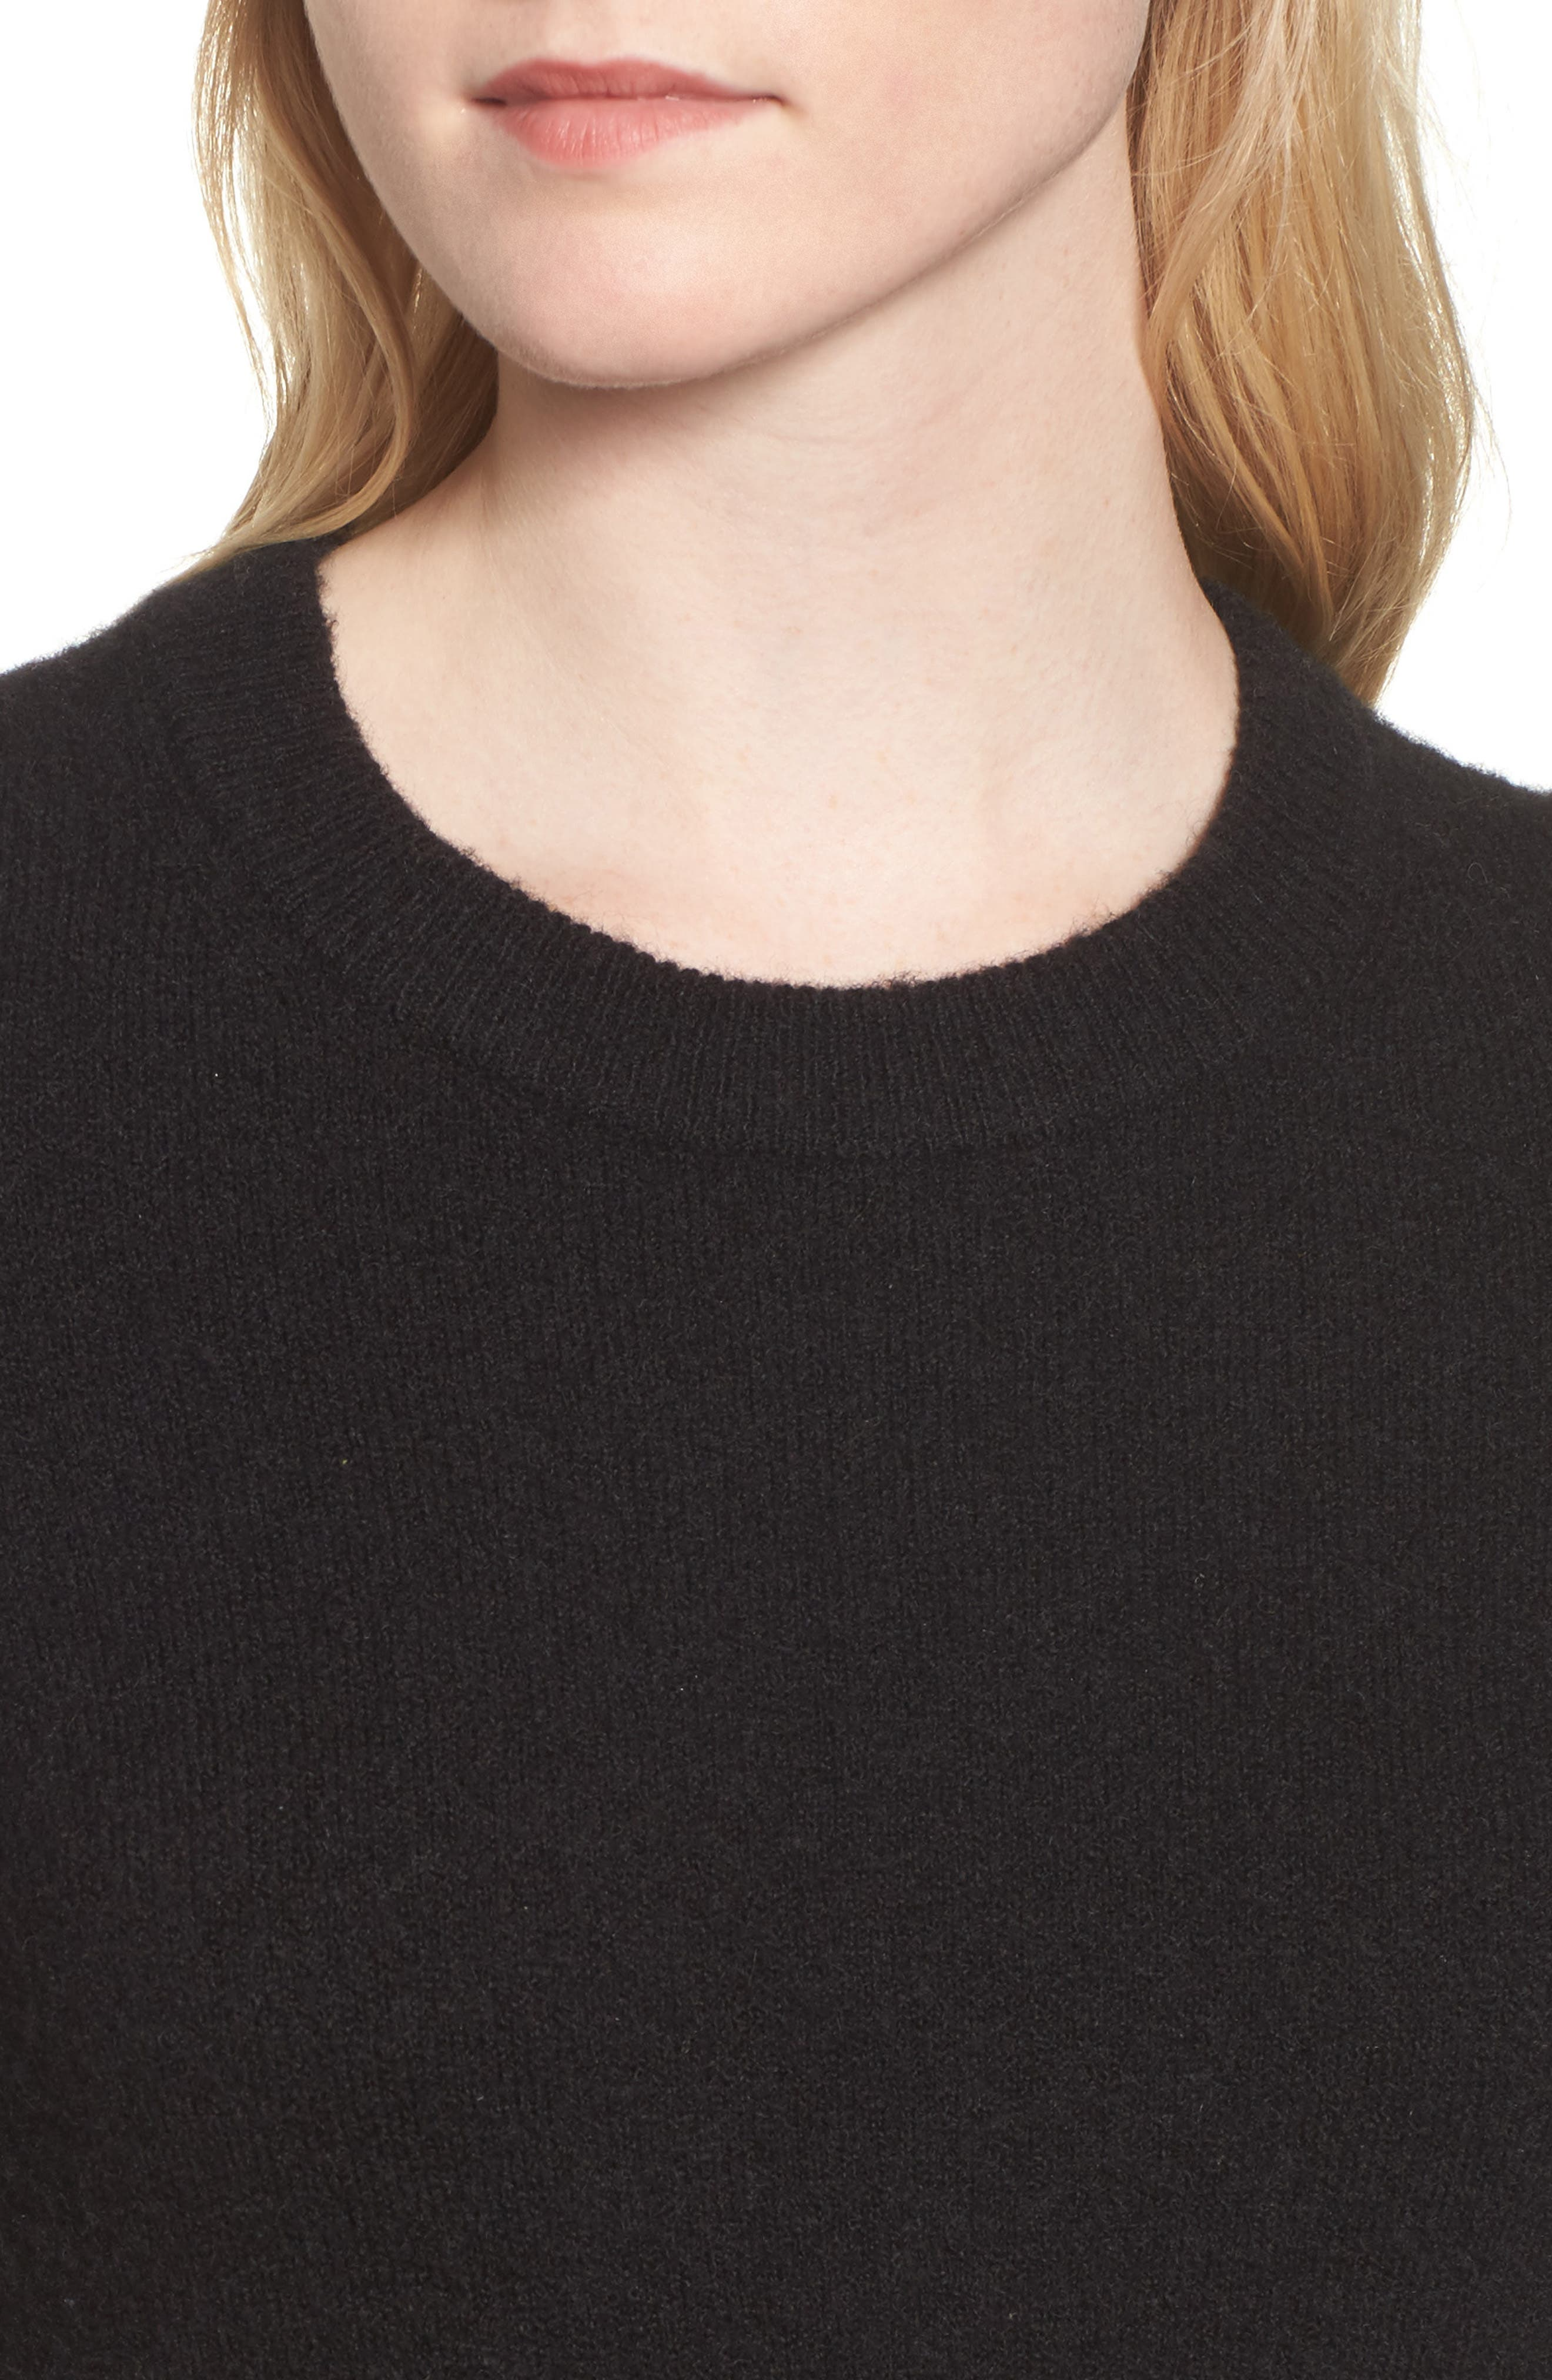 Fremont Colorblock Pullover Sweater,                             Alternate thumbnail 5, color,